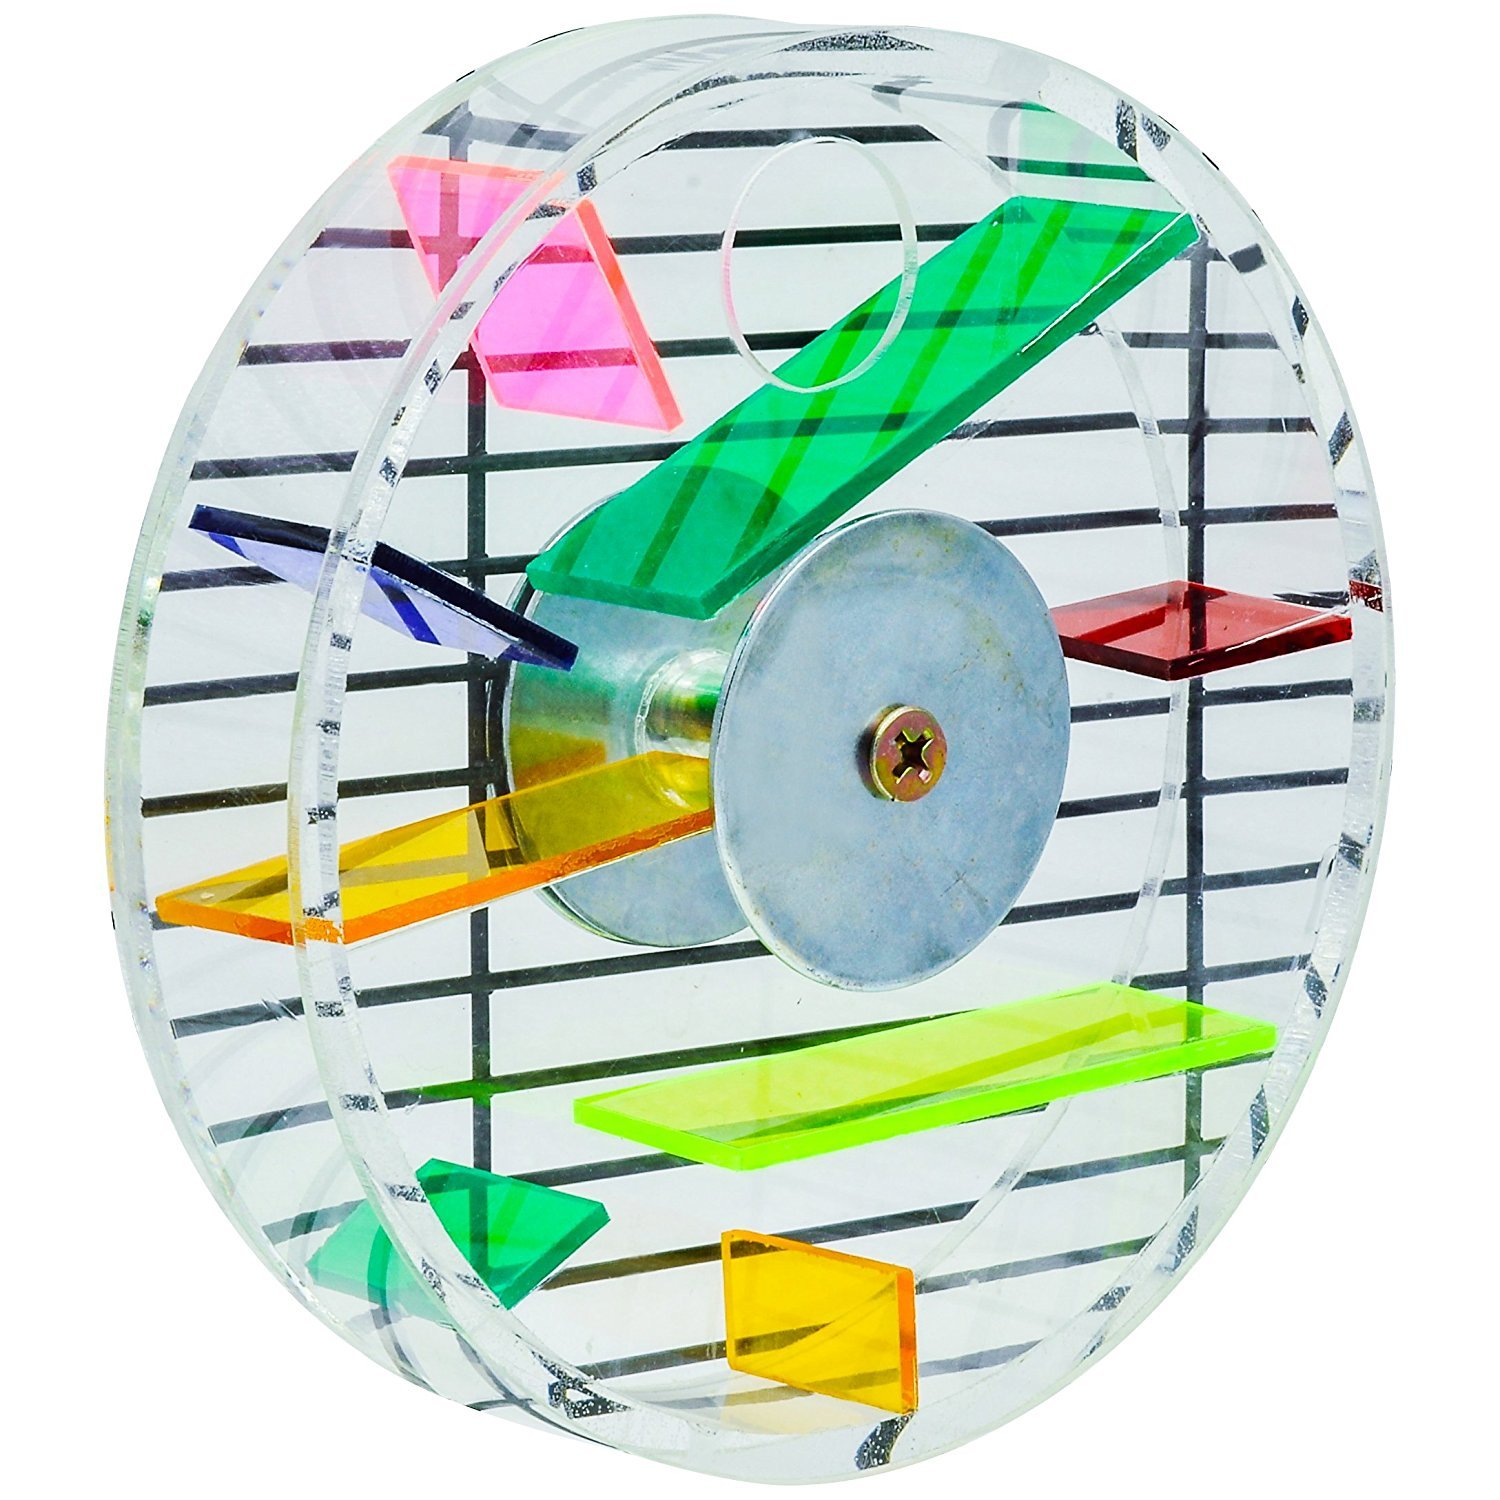 Niteangel Parred Creative Foraging Systems, Foraging Wheel, Bird Foraging Toy, 6-inch Diameter